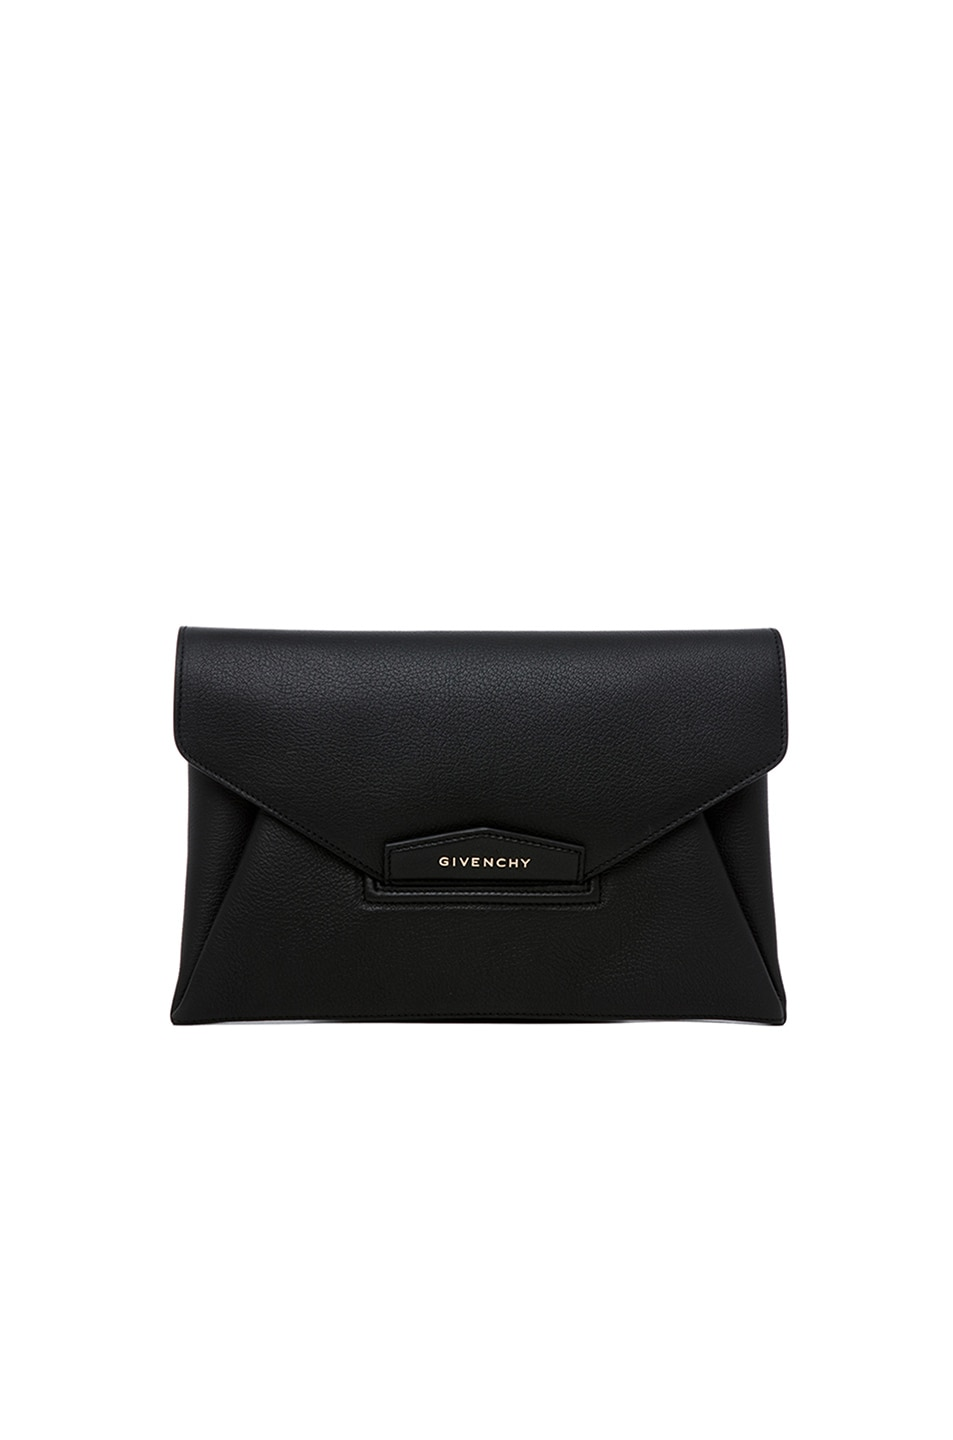 Image 1 of GIVENCHY Medium Antigona Envelope Clutch in Black